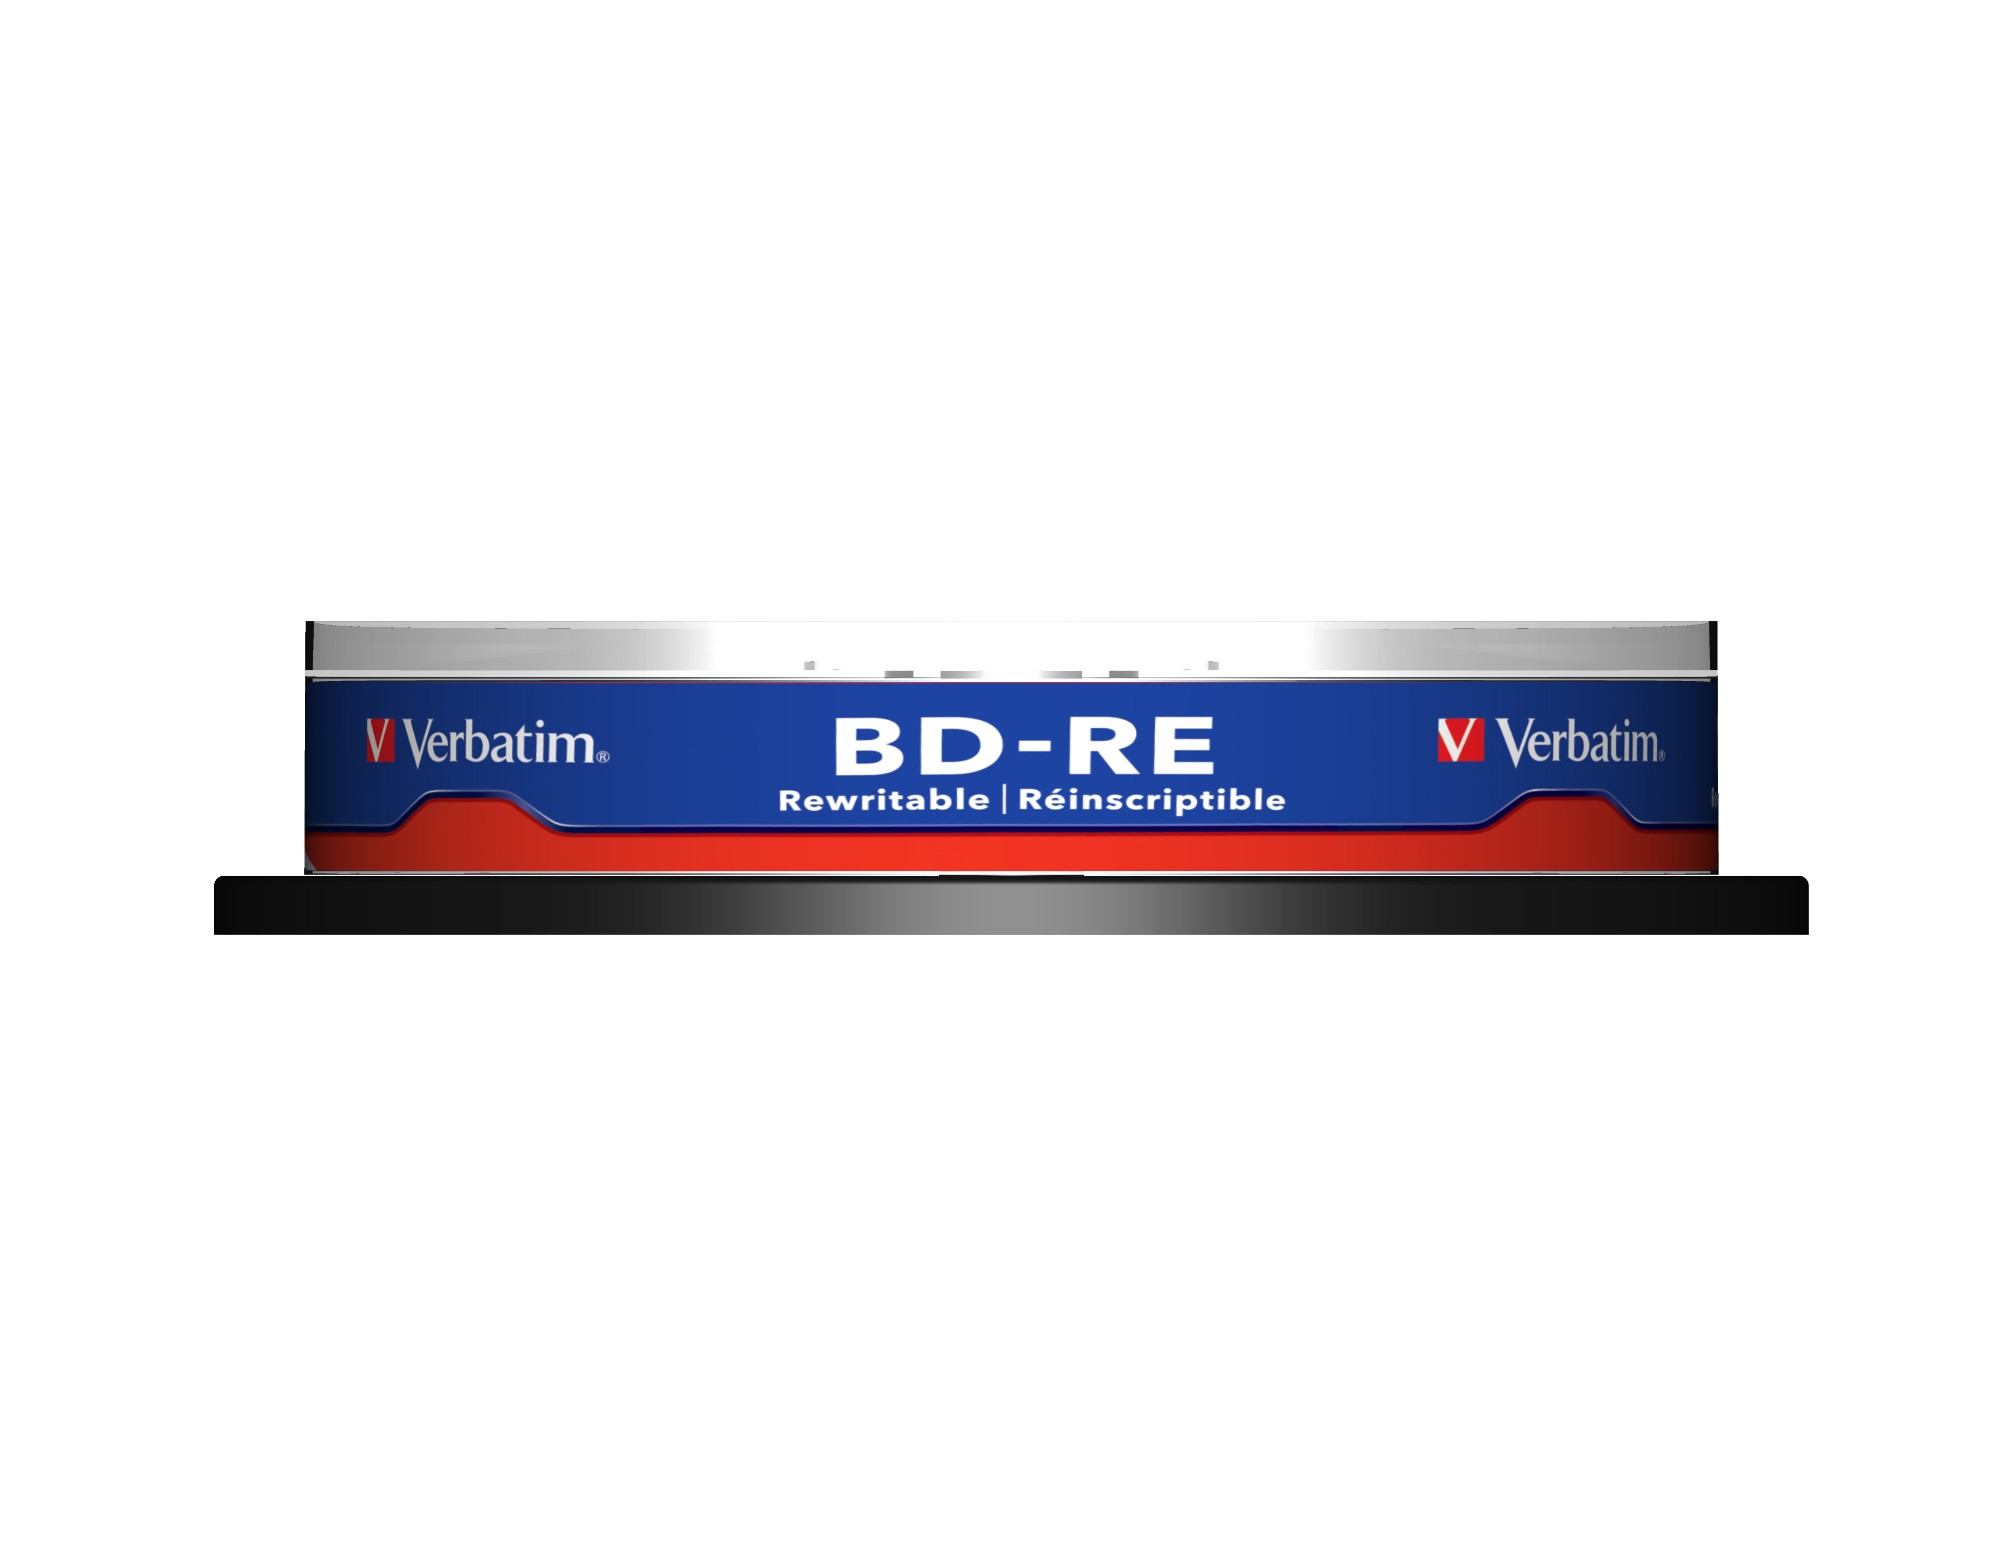 Verbatim BD-RE SL 25GB 2x 10 Pack Spindle BD-RE 25GB 10pc(s)